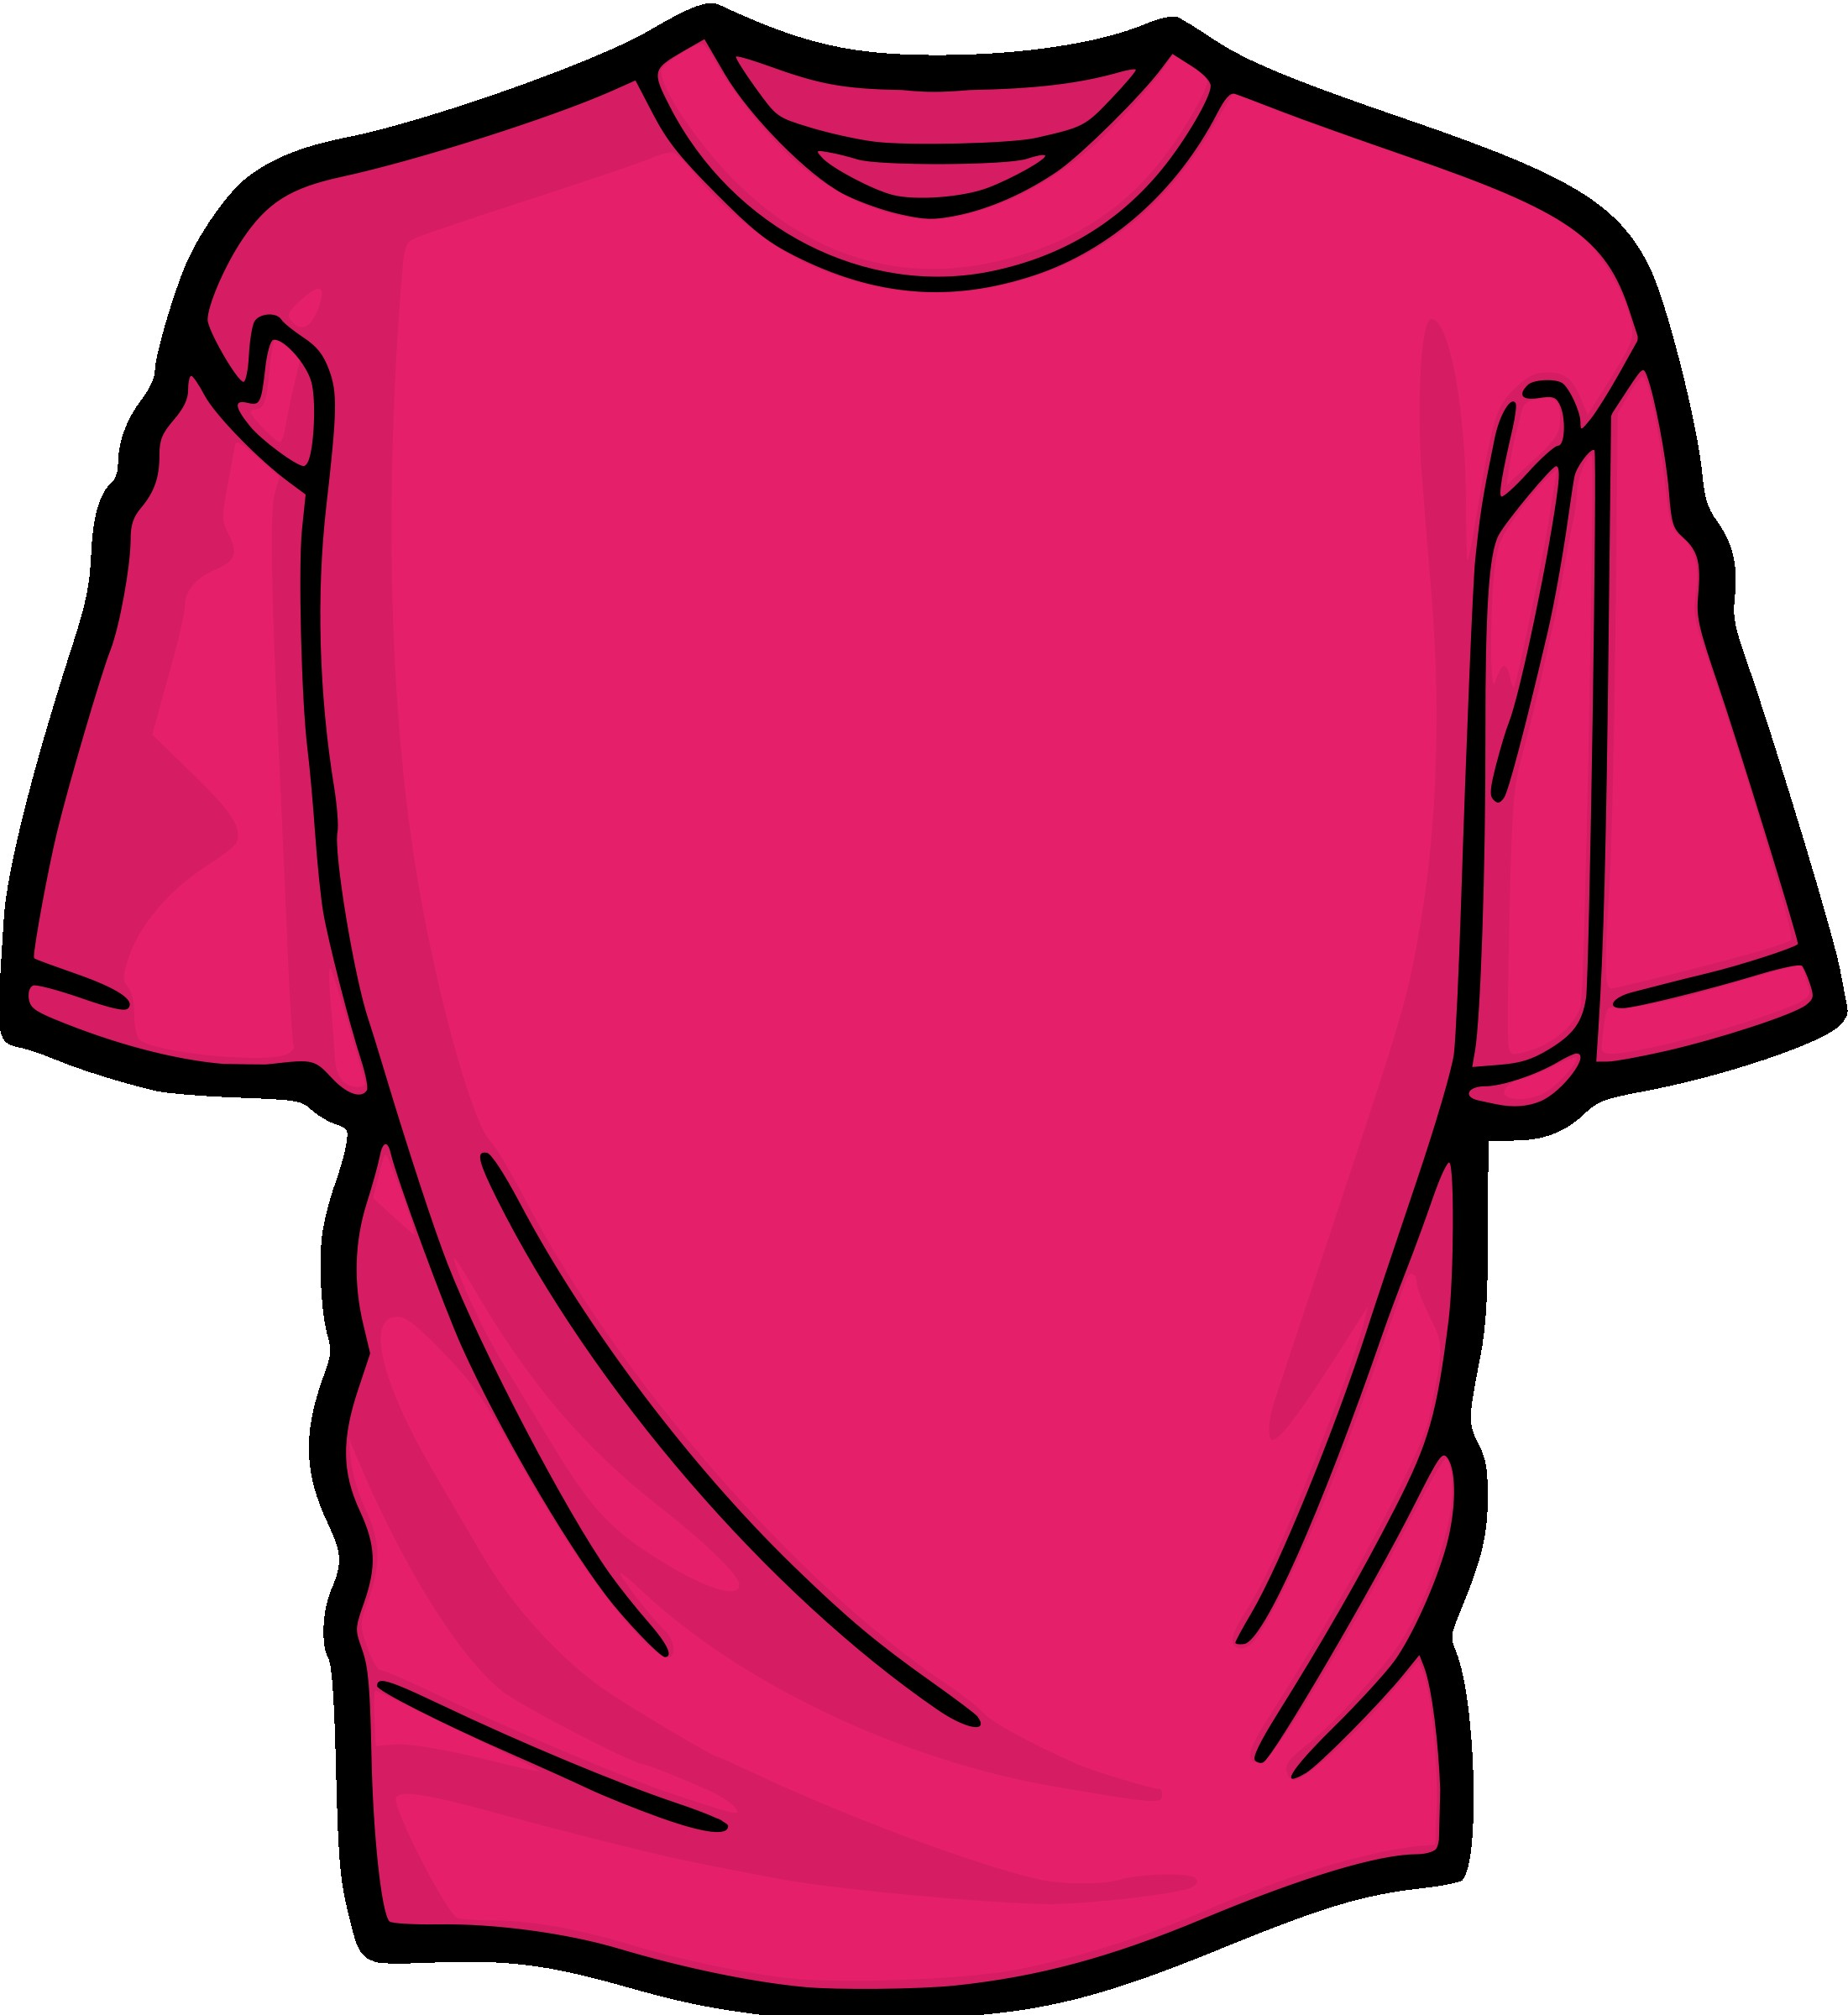 2201x2400 T Shirts Collection Royalty Free Vector Clip Art Image 4211